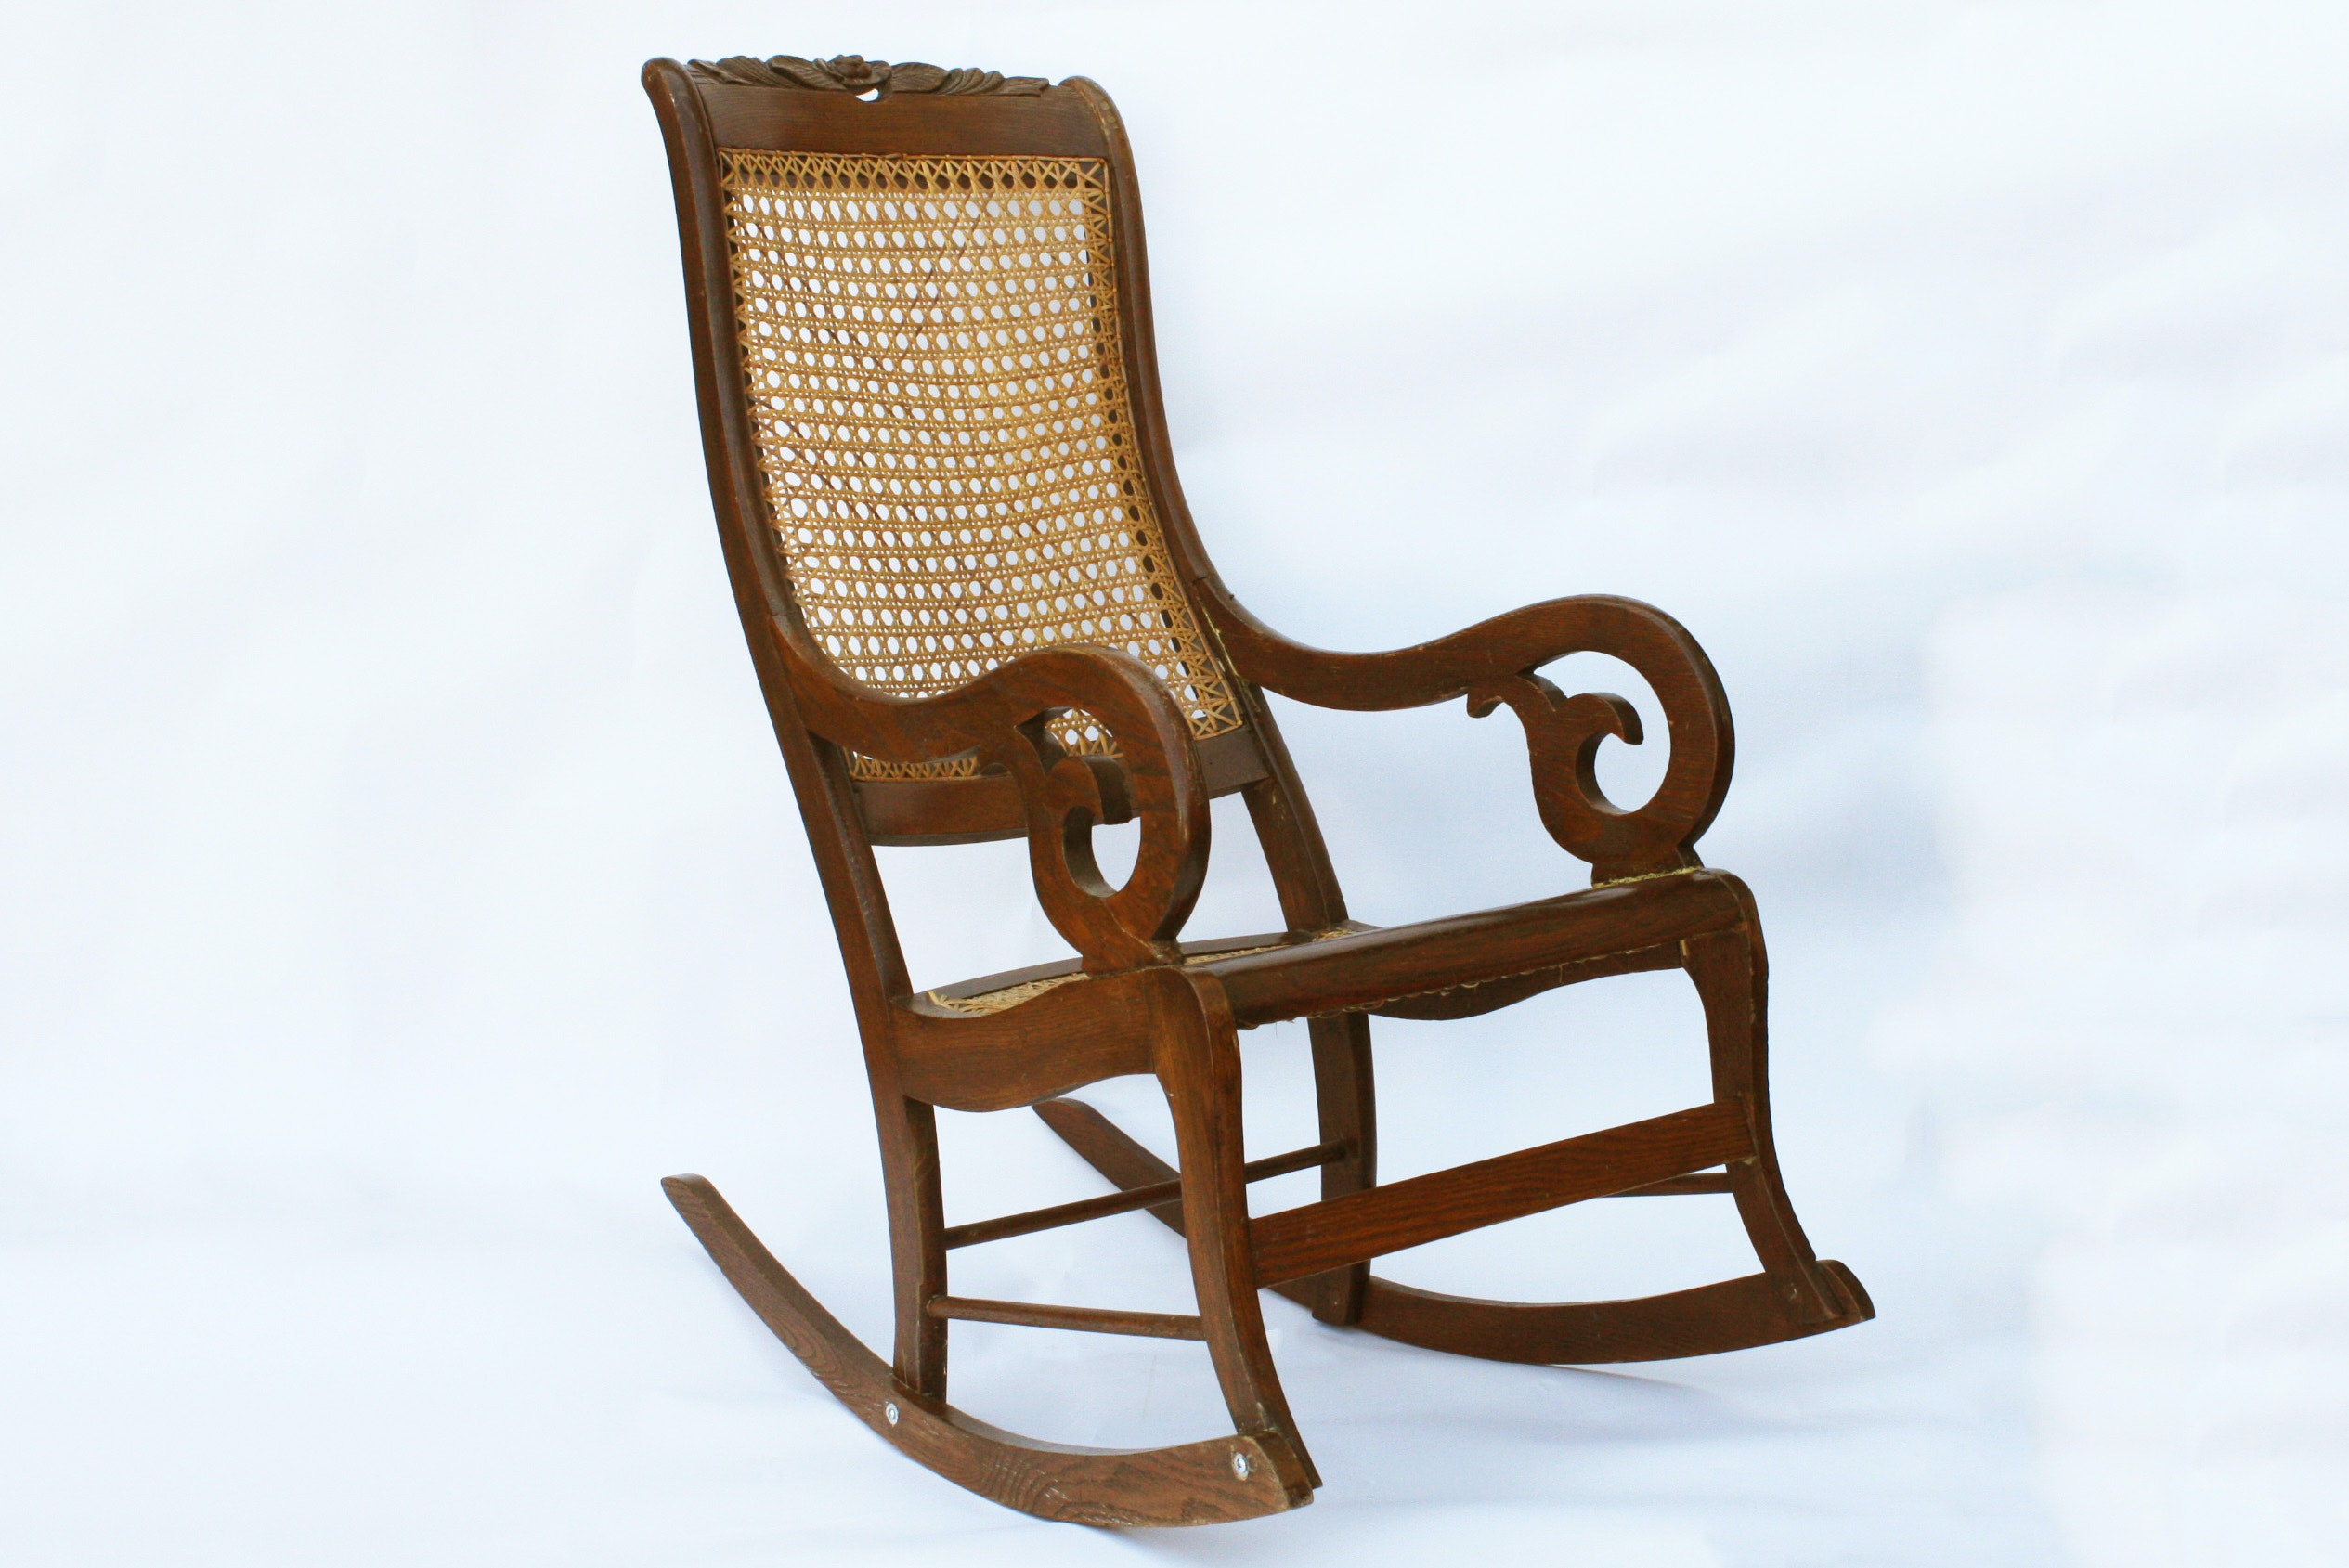 Victorian Style Cane Rocking Chair